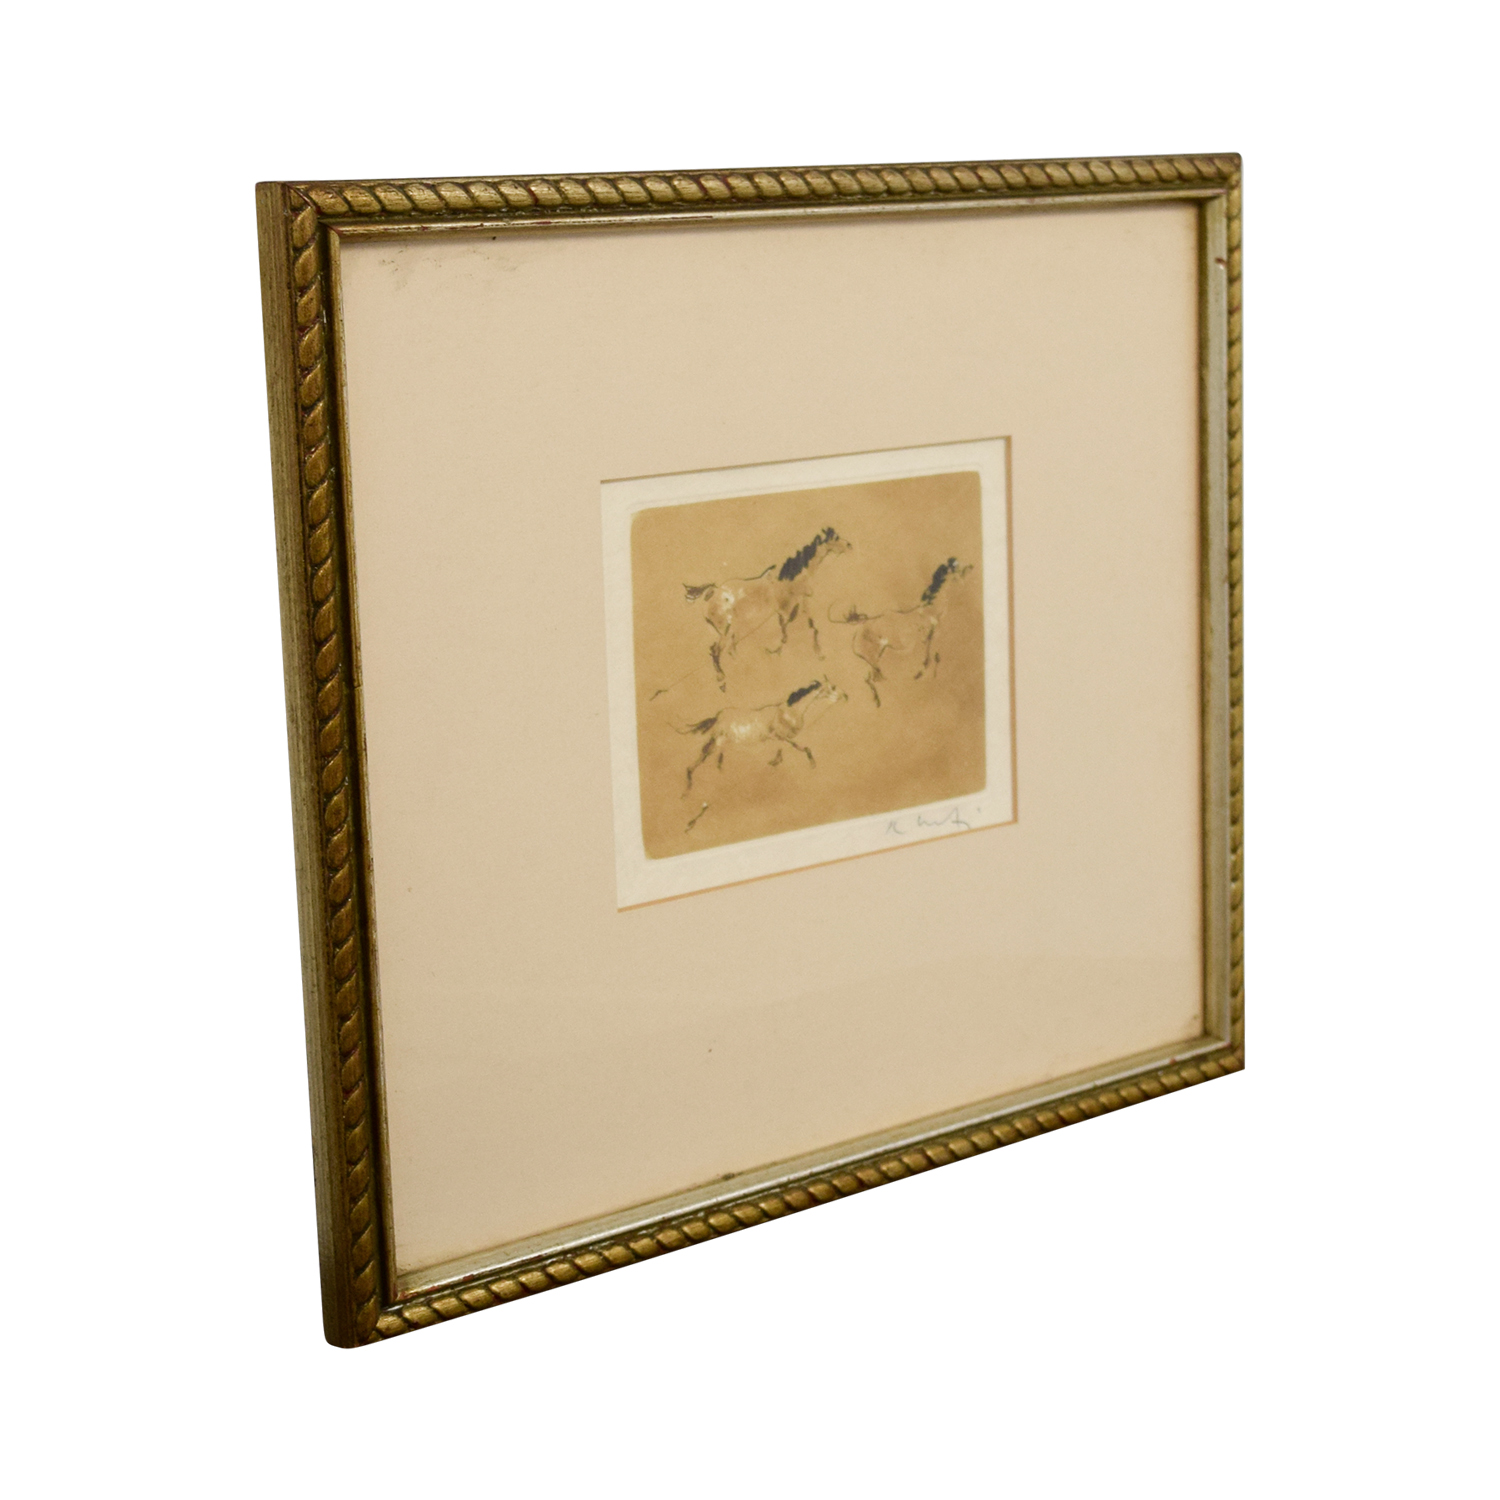 Framed Horse Print used